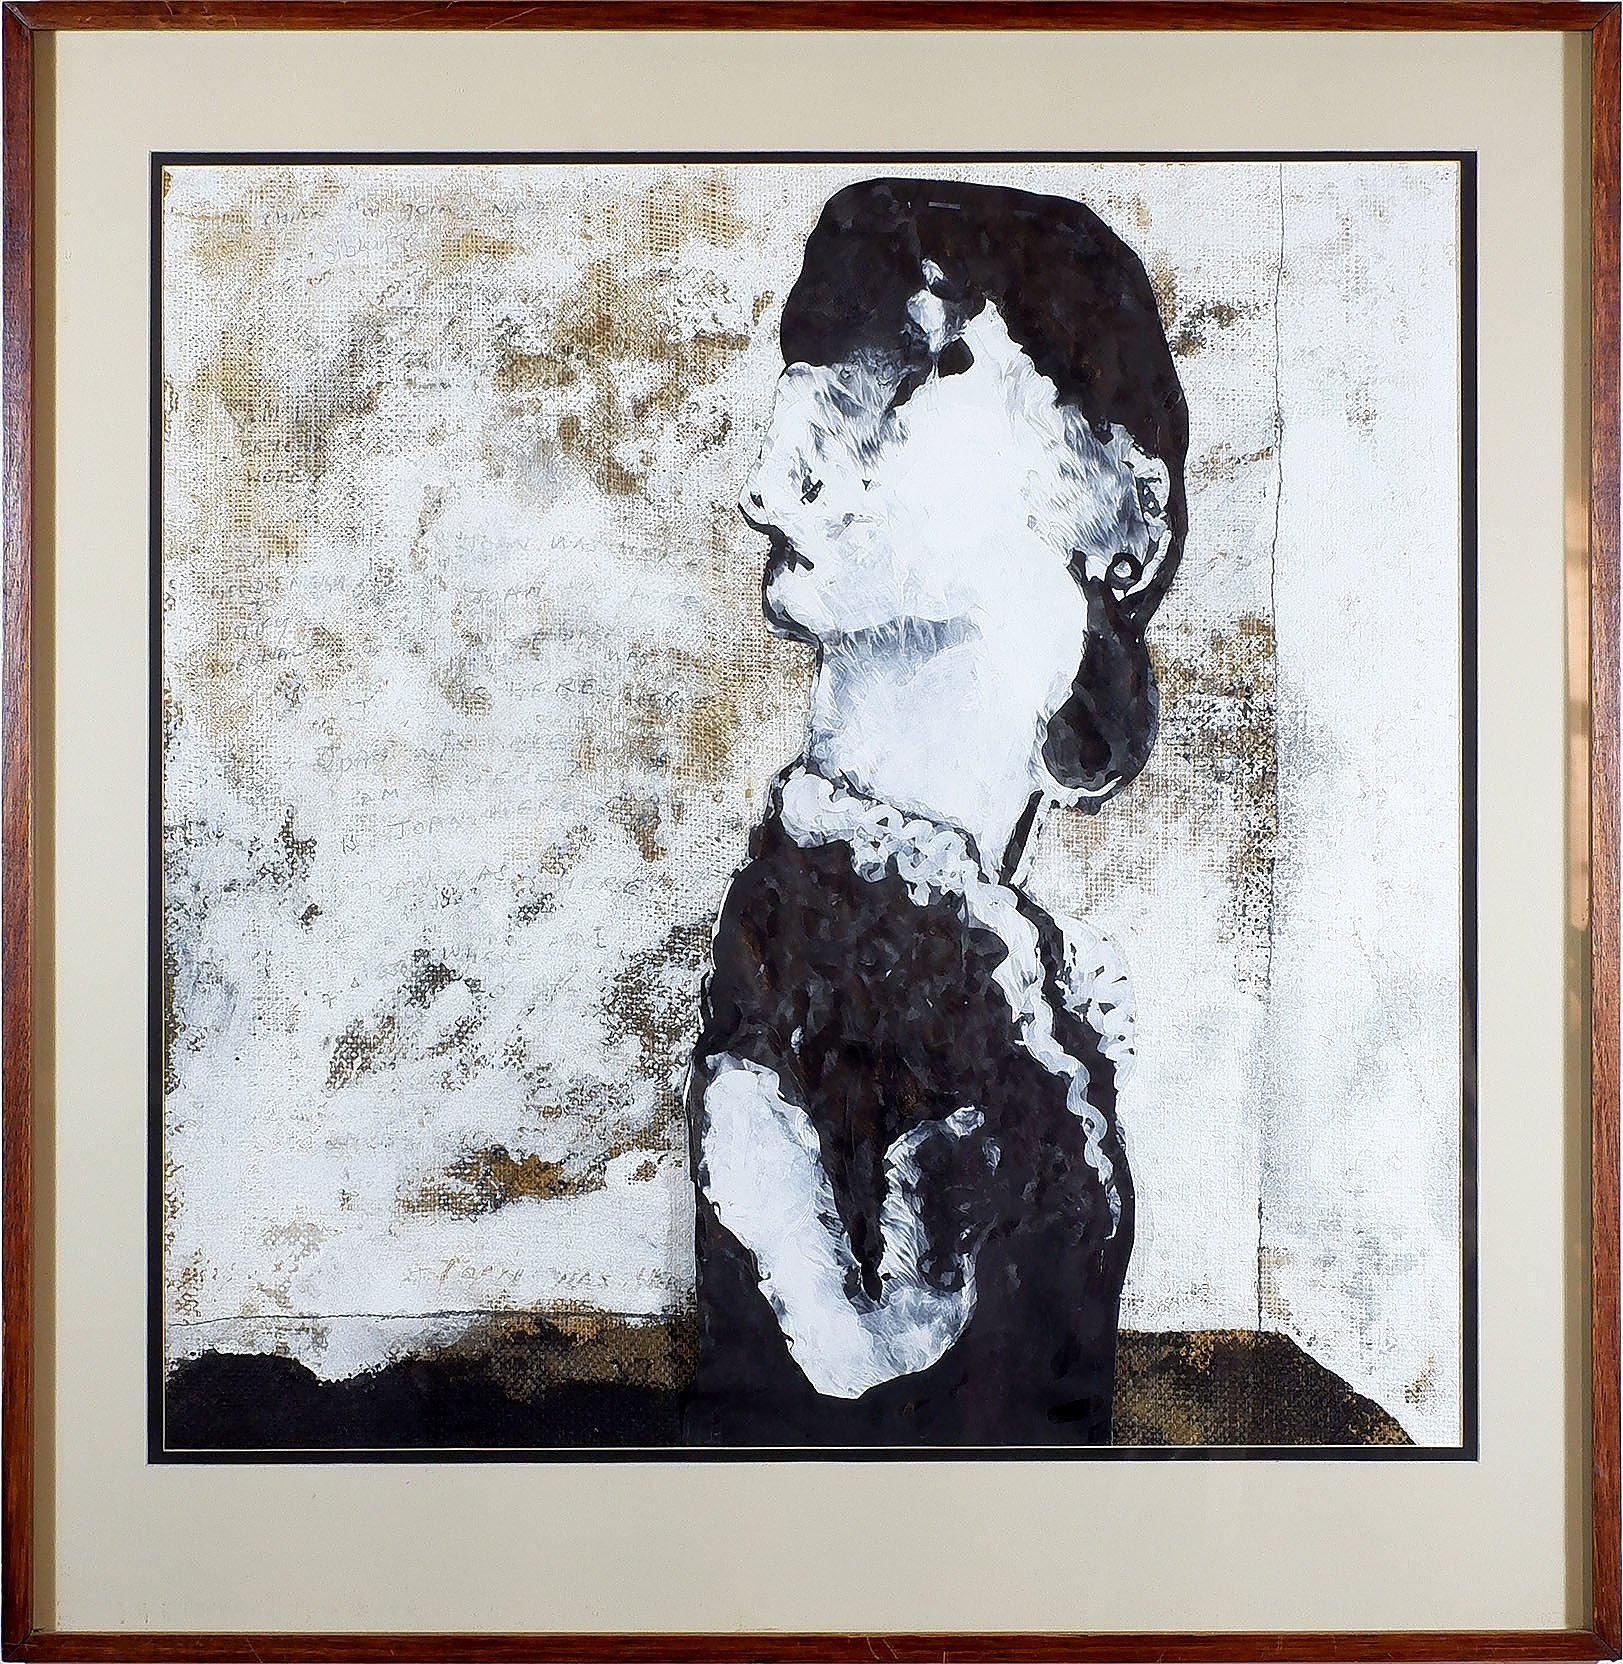 'Andrew Sibley (1933-2015), Collage and Mixed Media on Hessian, 1978'